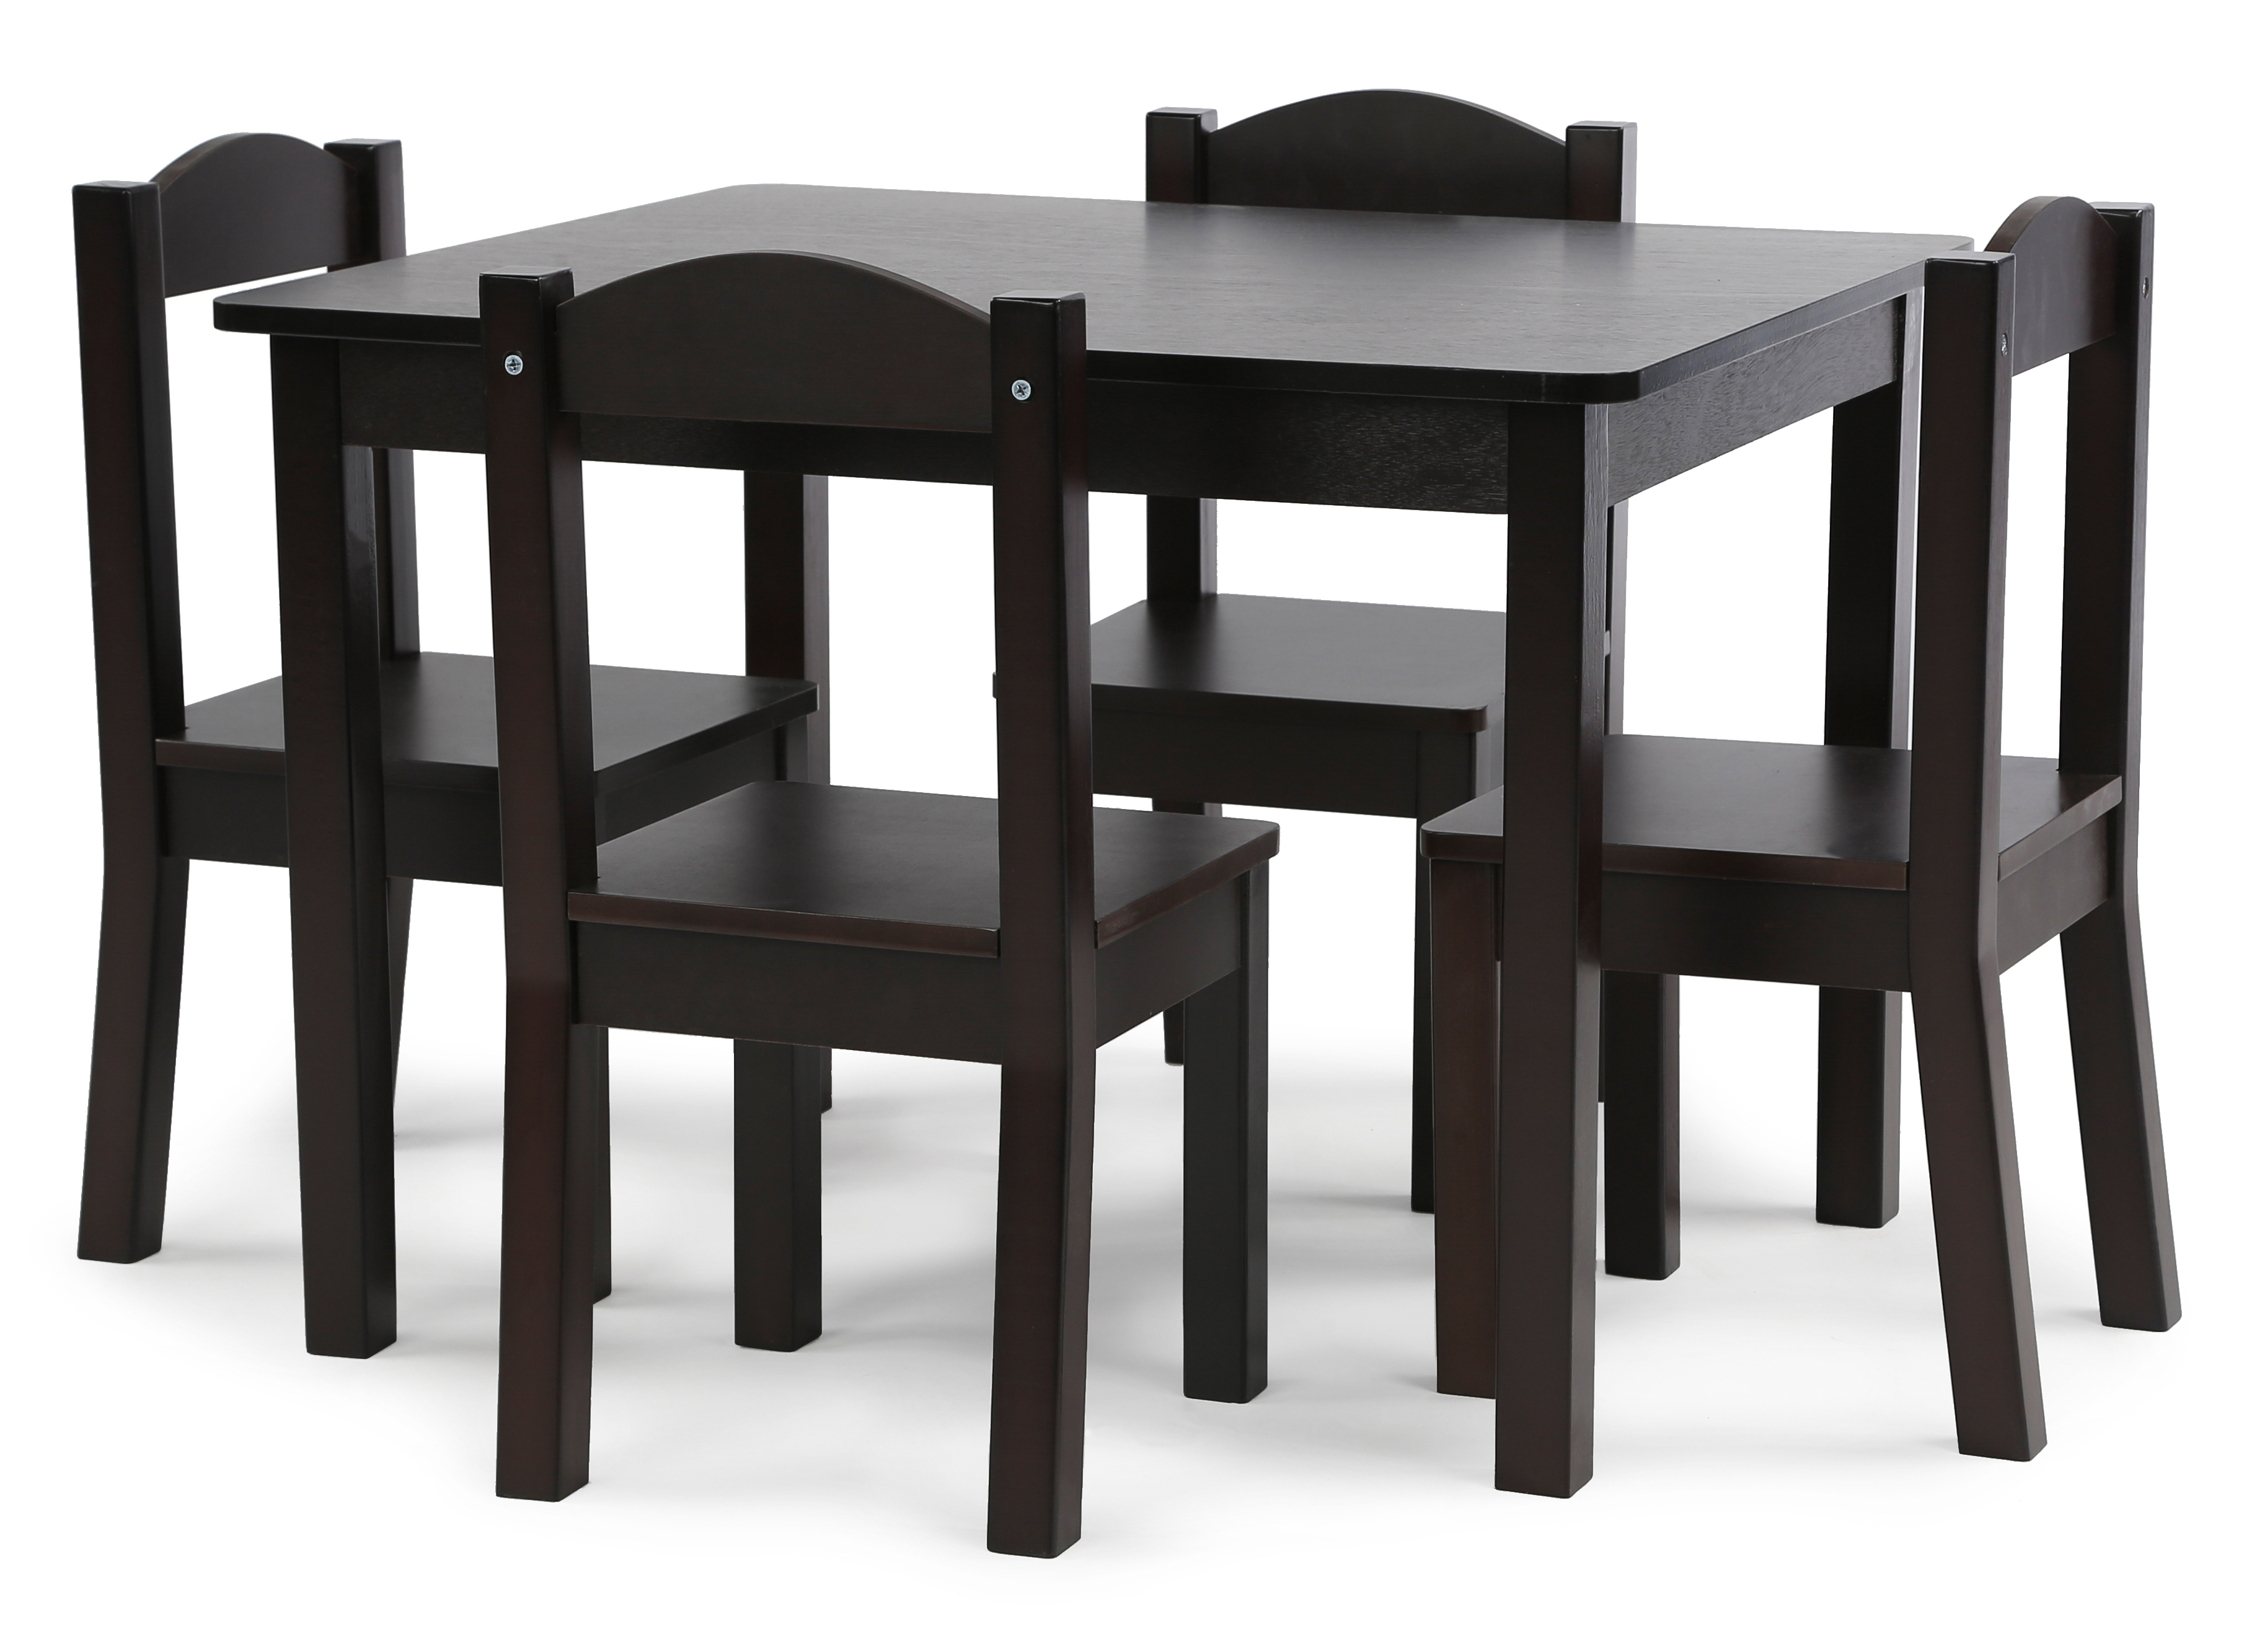 Kids Wood Table And Chairs Tot Tutors Kids Wood Table And 4 Chairs Set Espresso